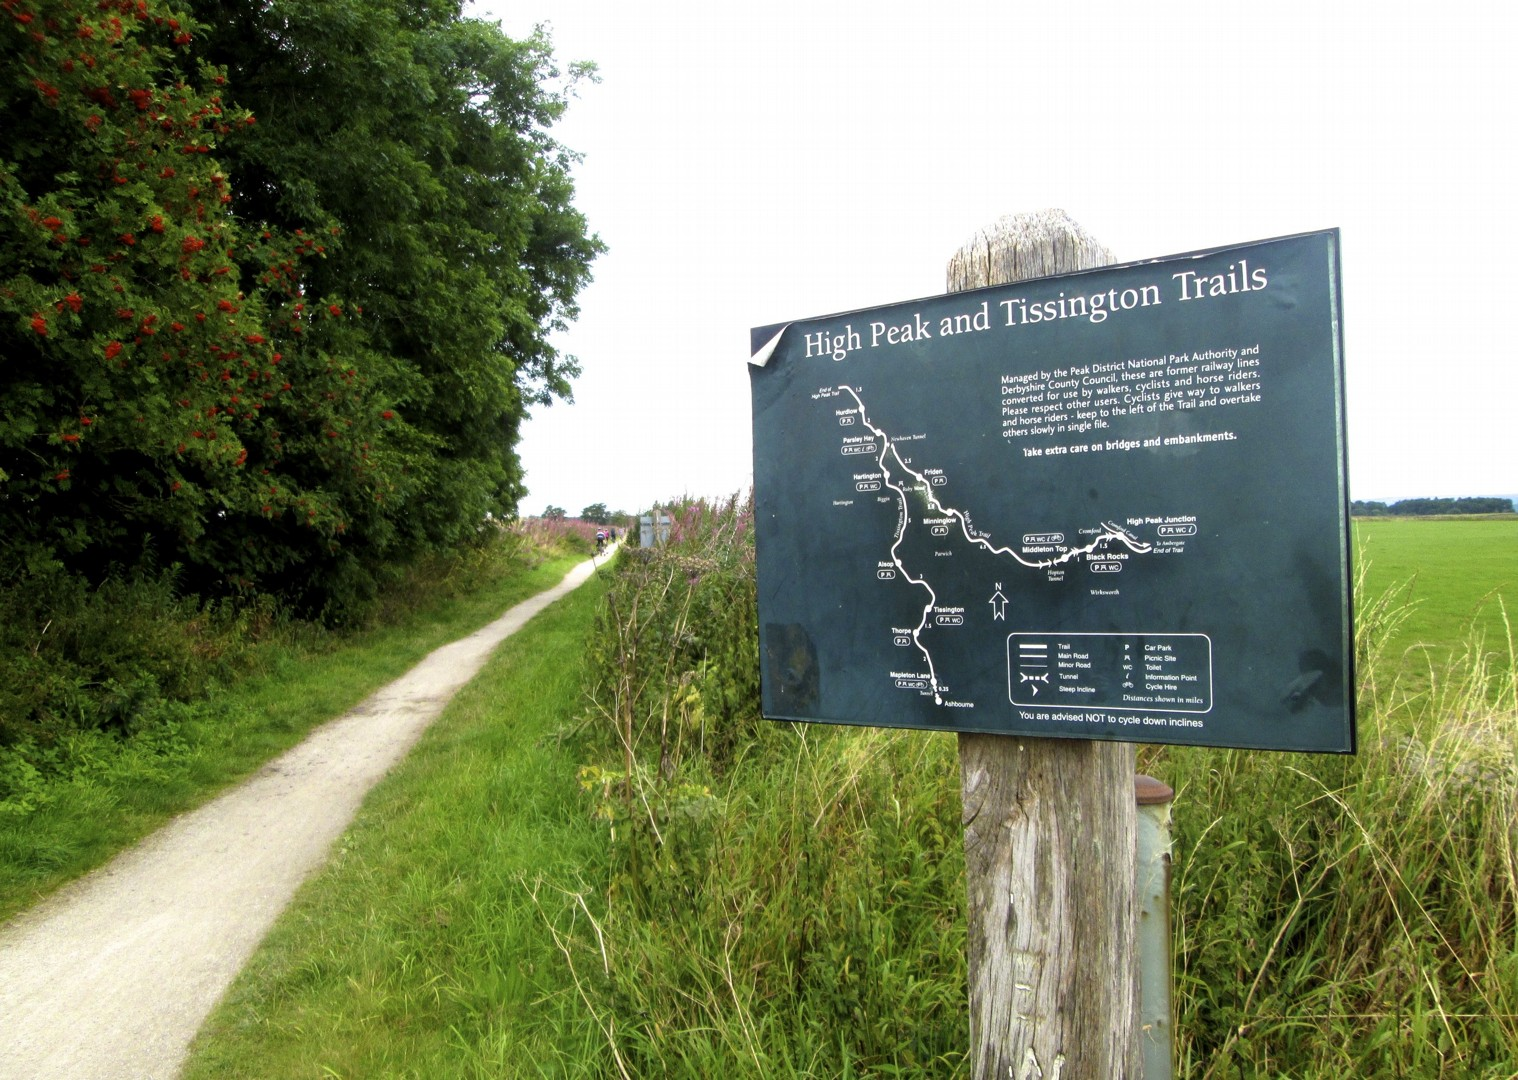 leisure-cycling-holiday-dovedale-tissingtontrail.jpg - UK - Derbyshire Dales - Dovedale - Self-Guided Leisure Cycling Holiday - Leisure Cycling